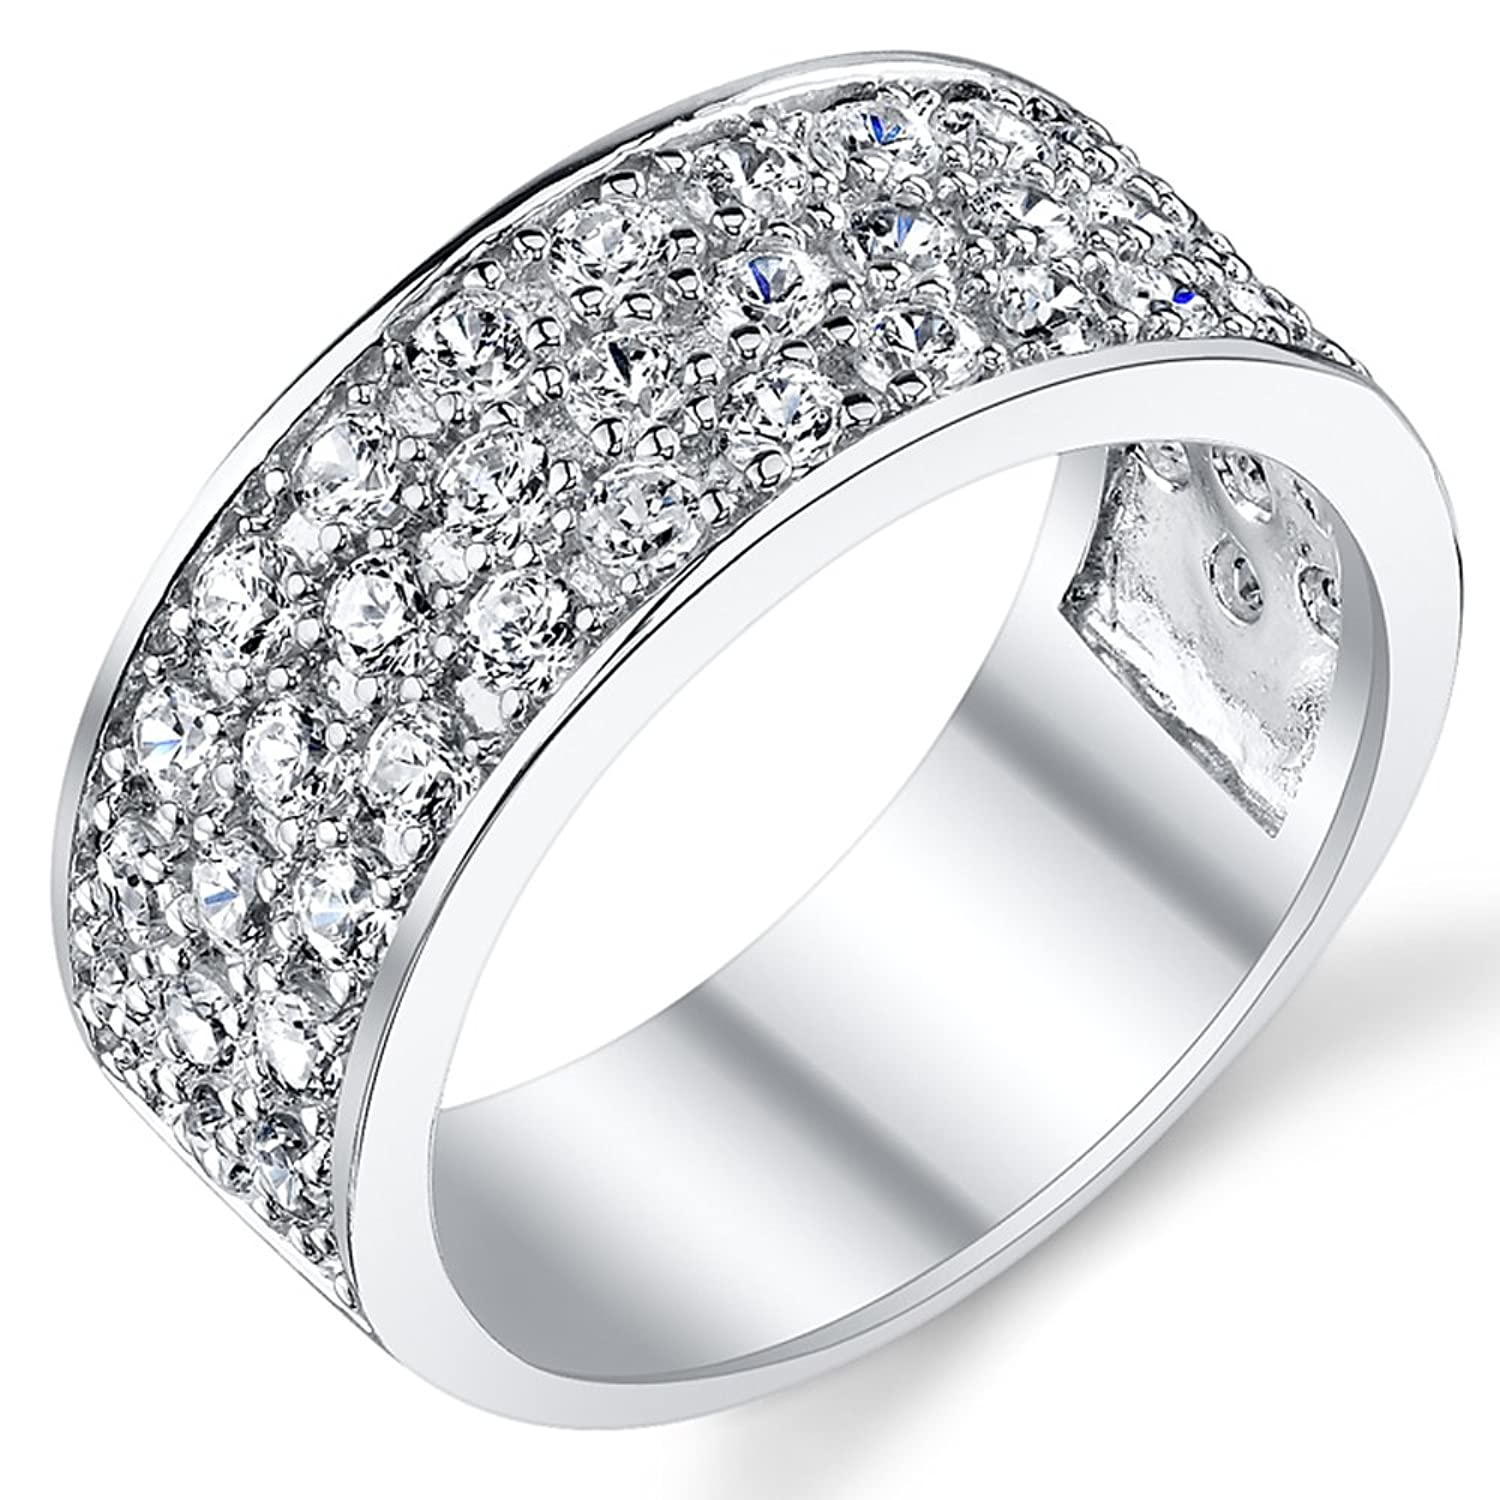 Sterling Silver Menu0027s Wedding Band Engagement Ring With Cubic Zirconia CZ  9MM 3 Row Sizes 7 To 13|Amazon.com